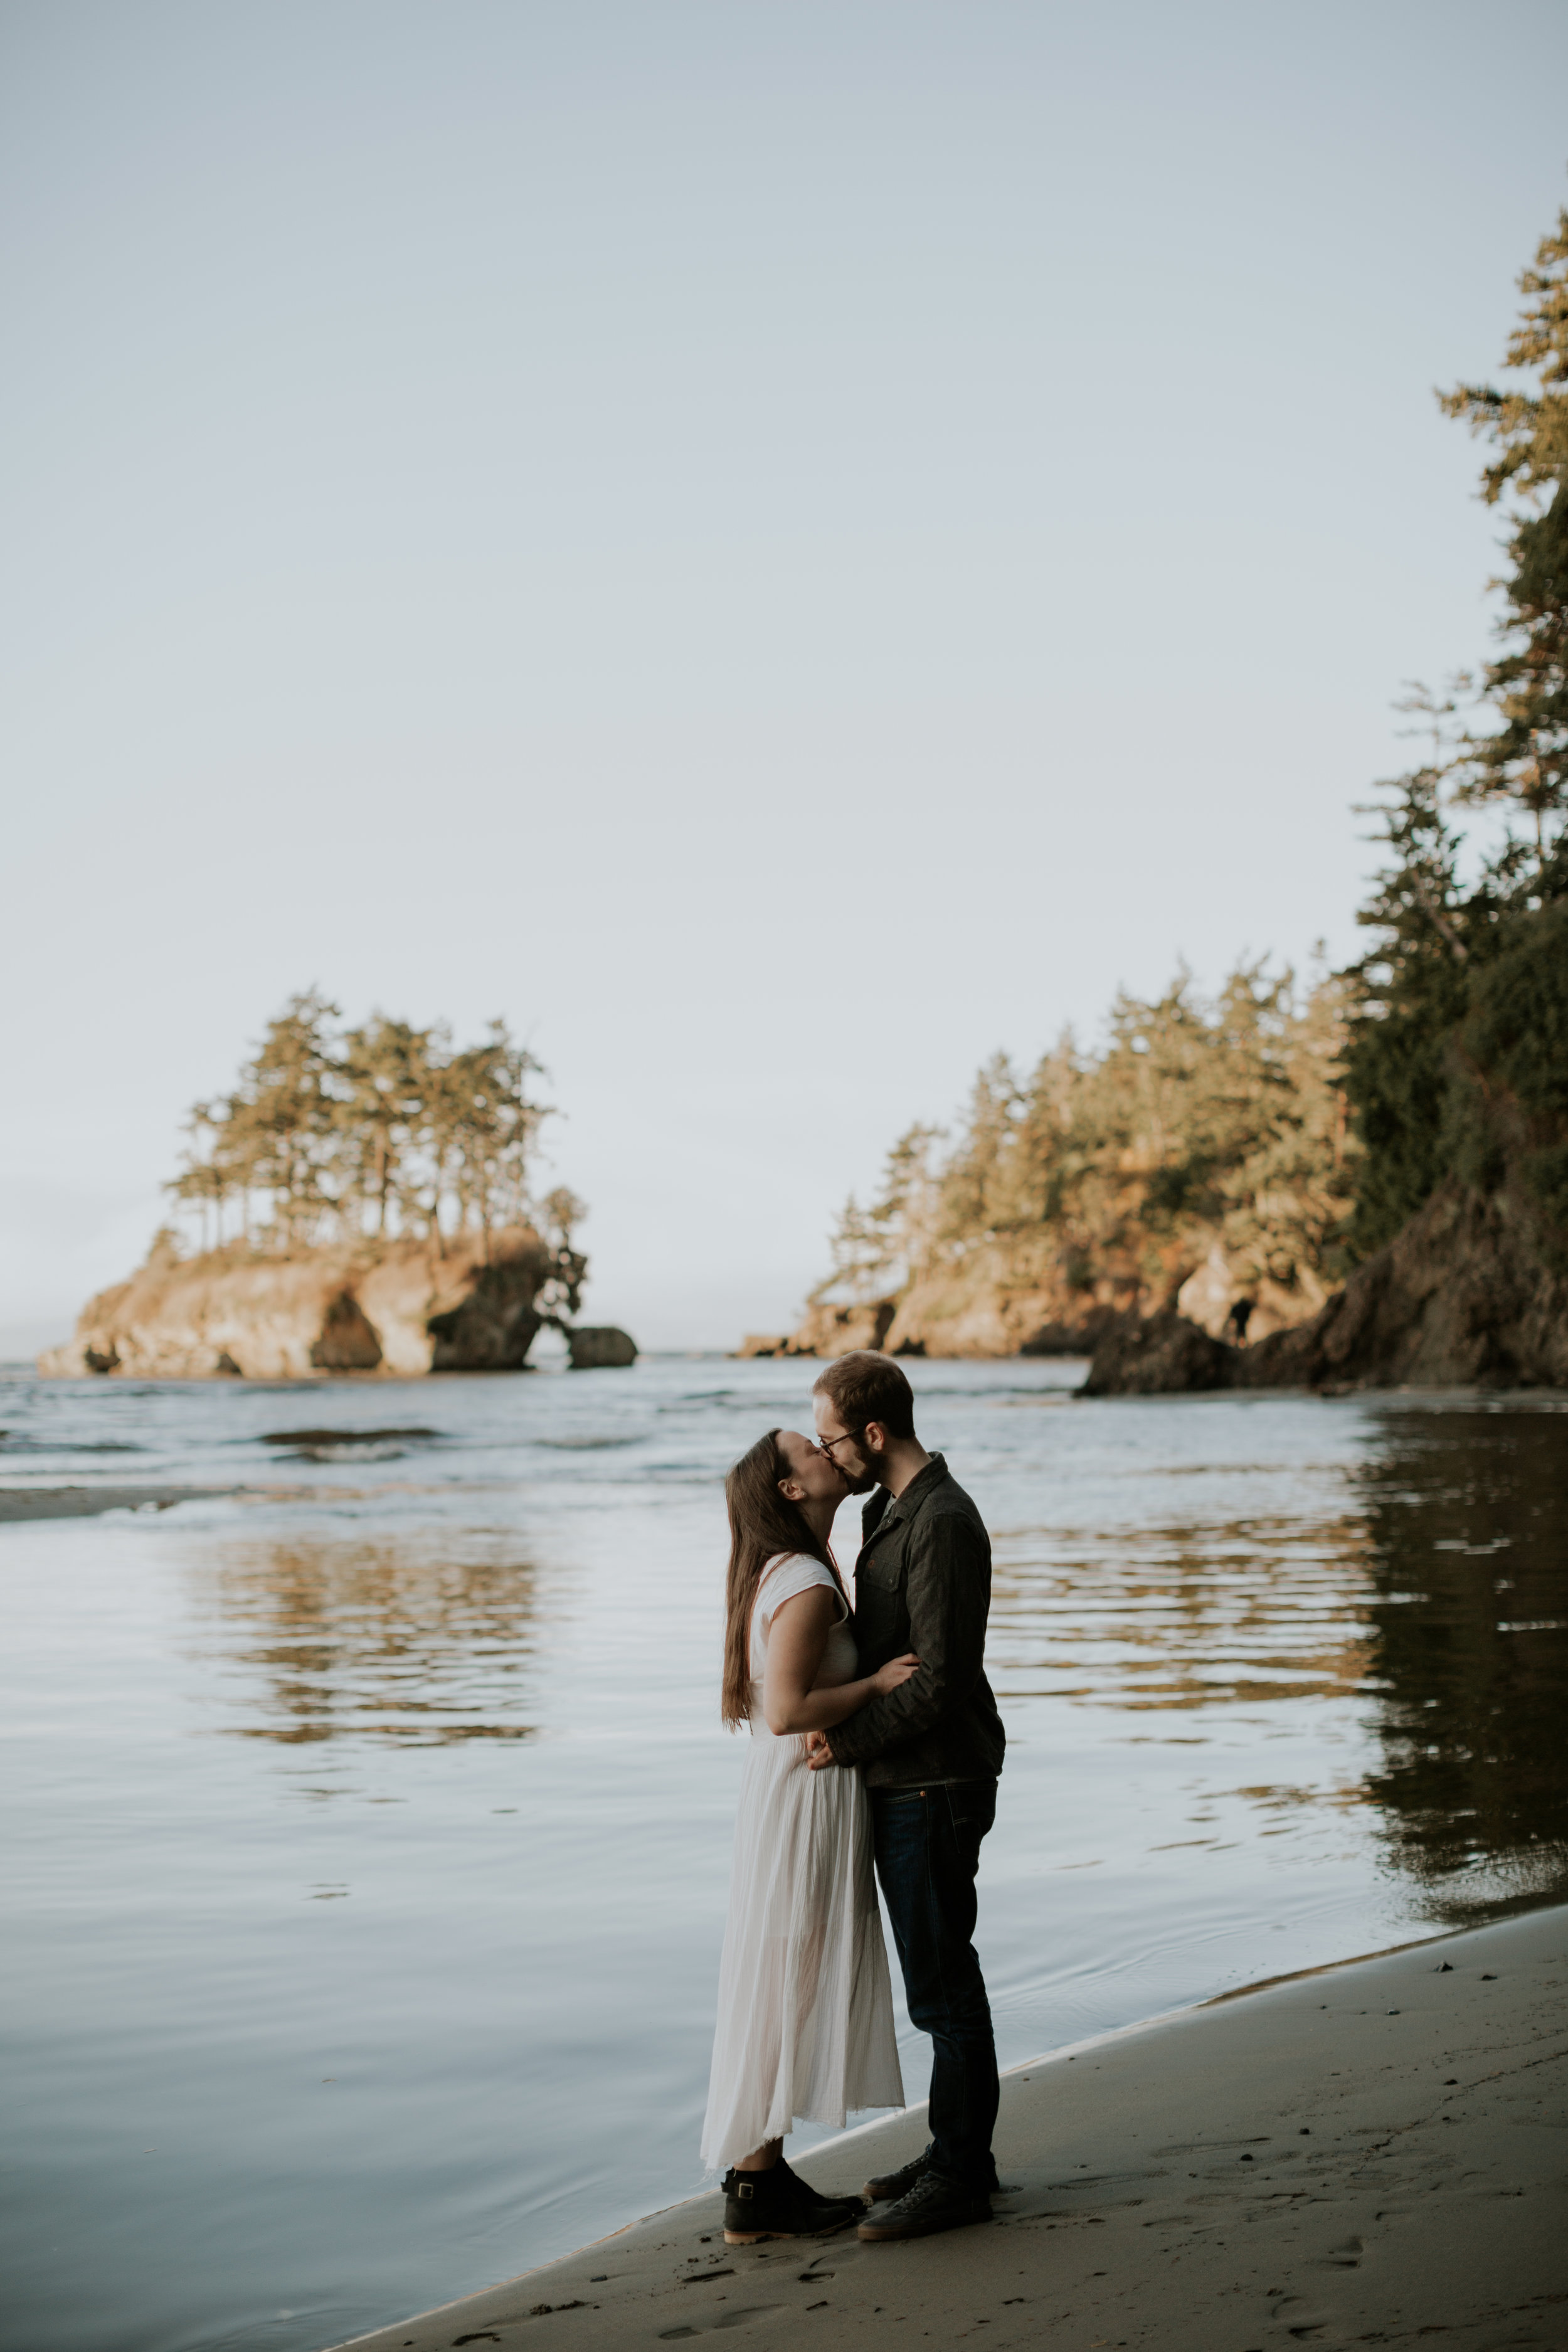 PNW-Olympic National Park-Salt Creek-engagement-Portrait-Port-Angeles-Washington-elopement-photographer-kayla-dawn-photography-kayladawnphoto-wedding-anniversary-photoshoot-olympic-peninsula-210.jpg